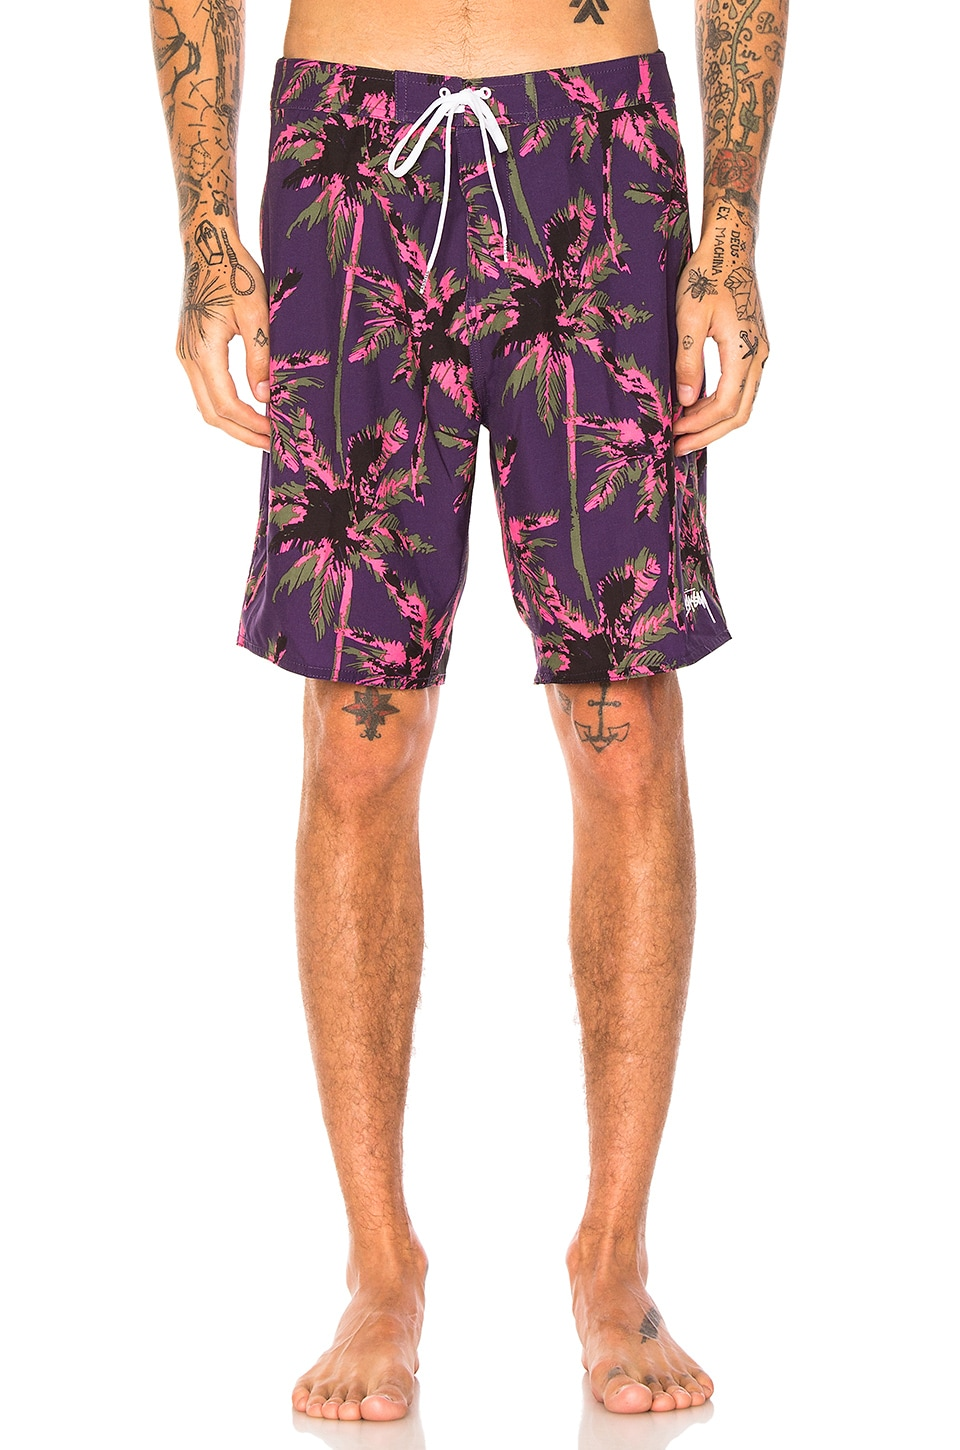 Dark Wild Palm Trunk by Stussy